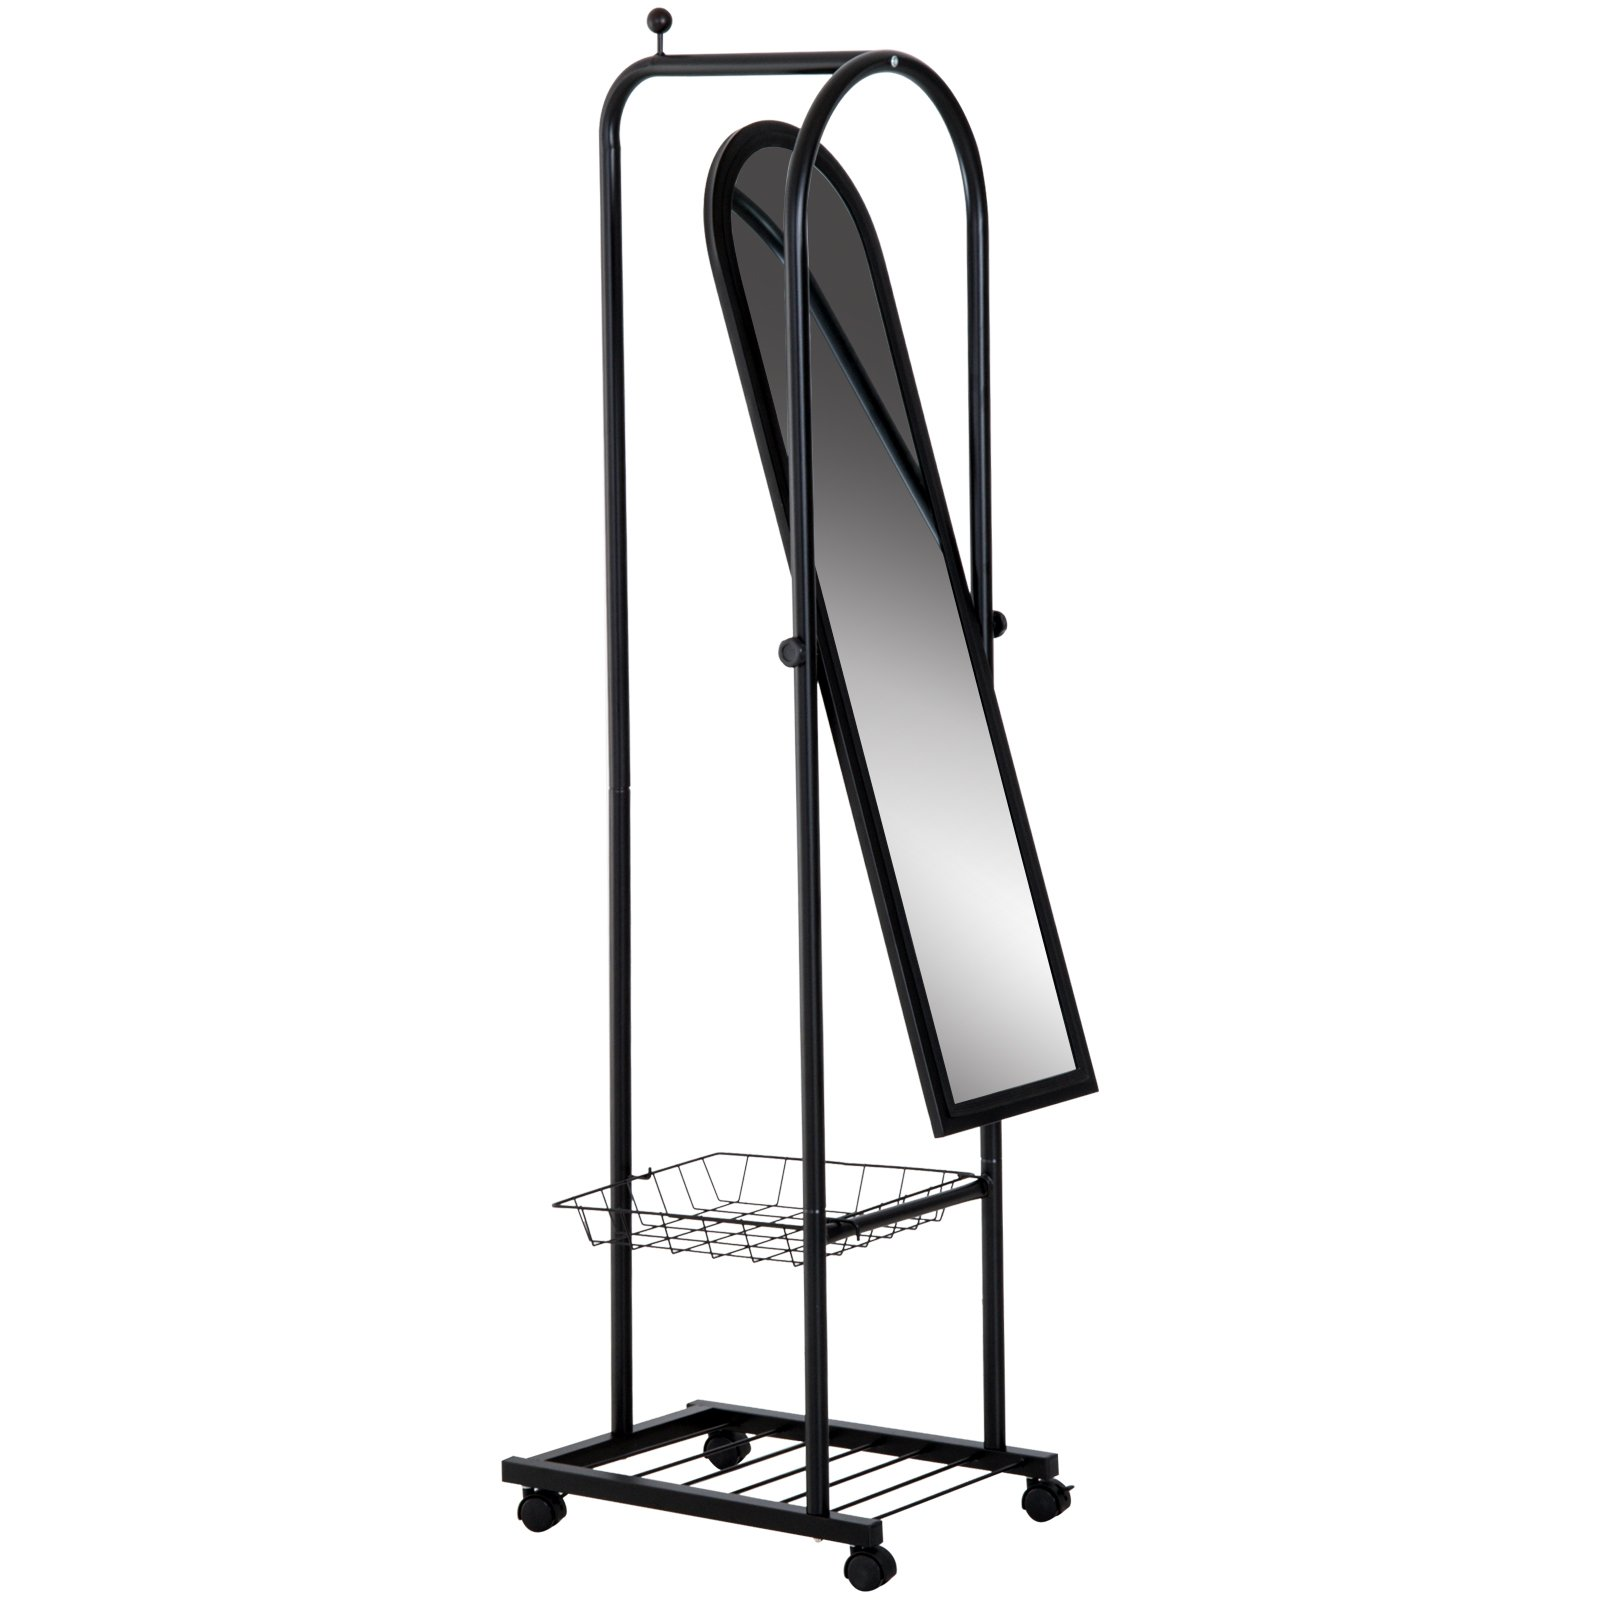 HOMCOM 65'' Steel Free Standing Metal Rolling Dressing Mirror with Clothes Rack and Baskets - Black